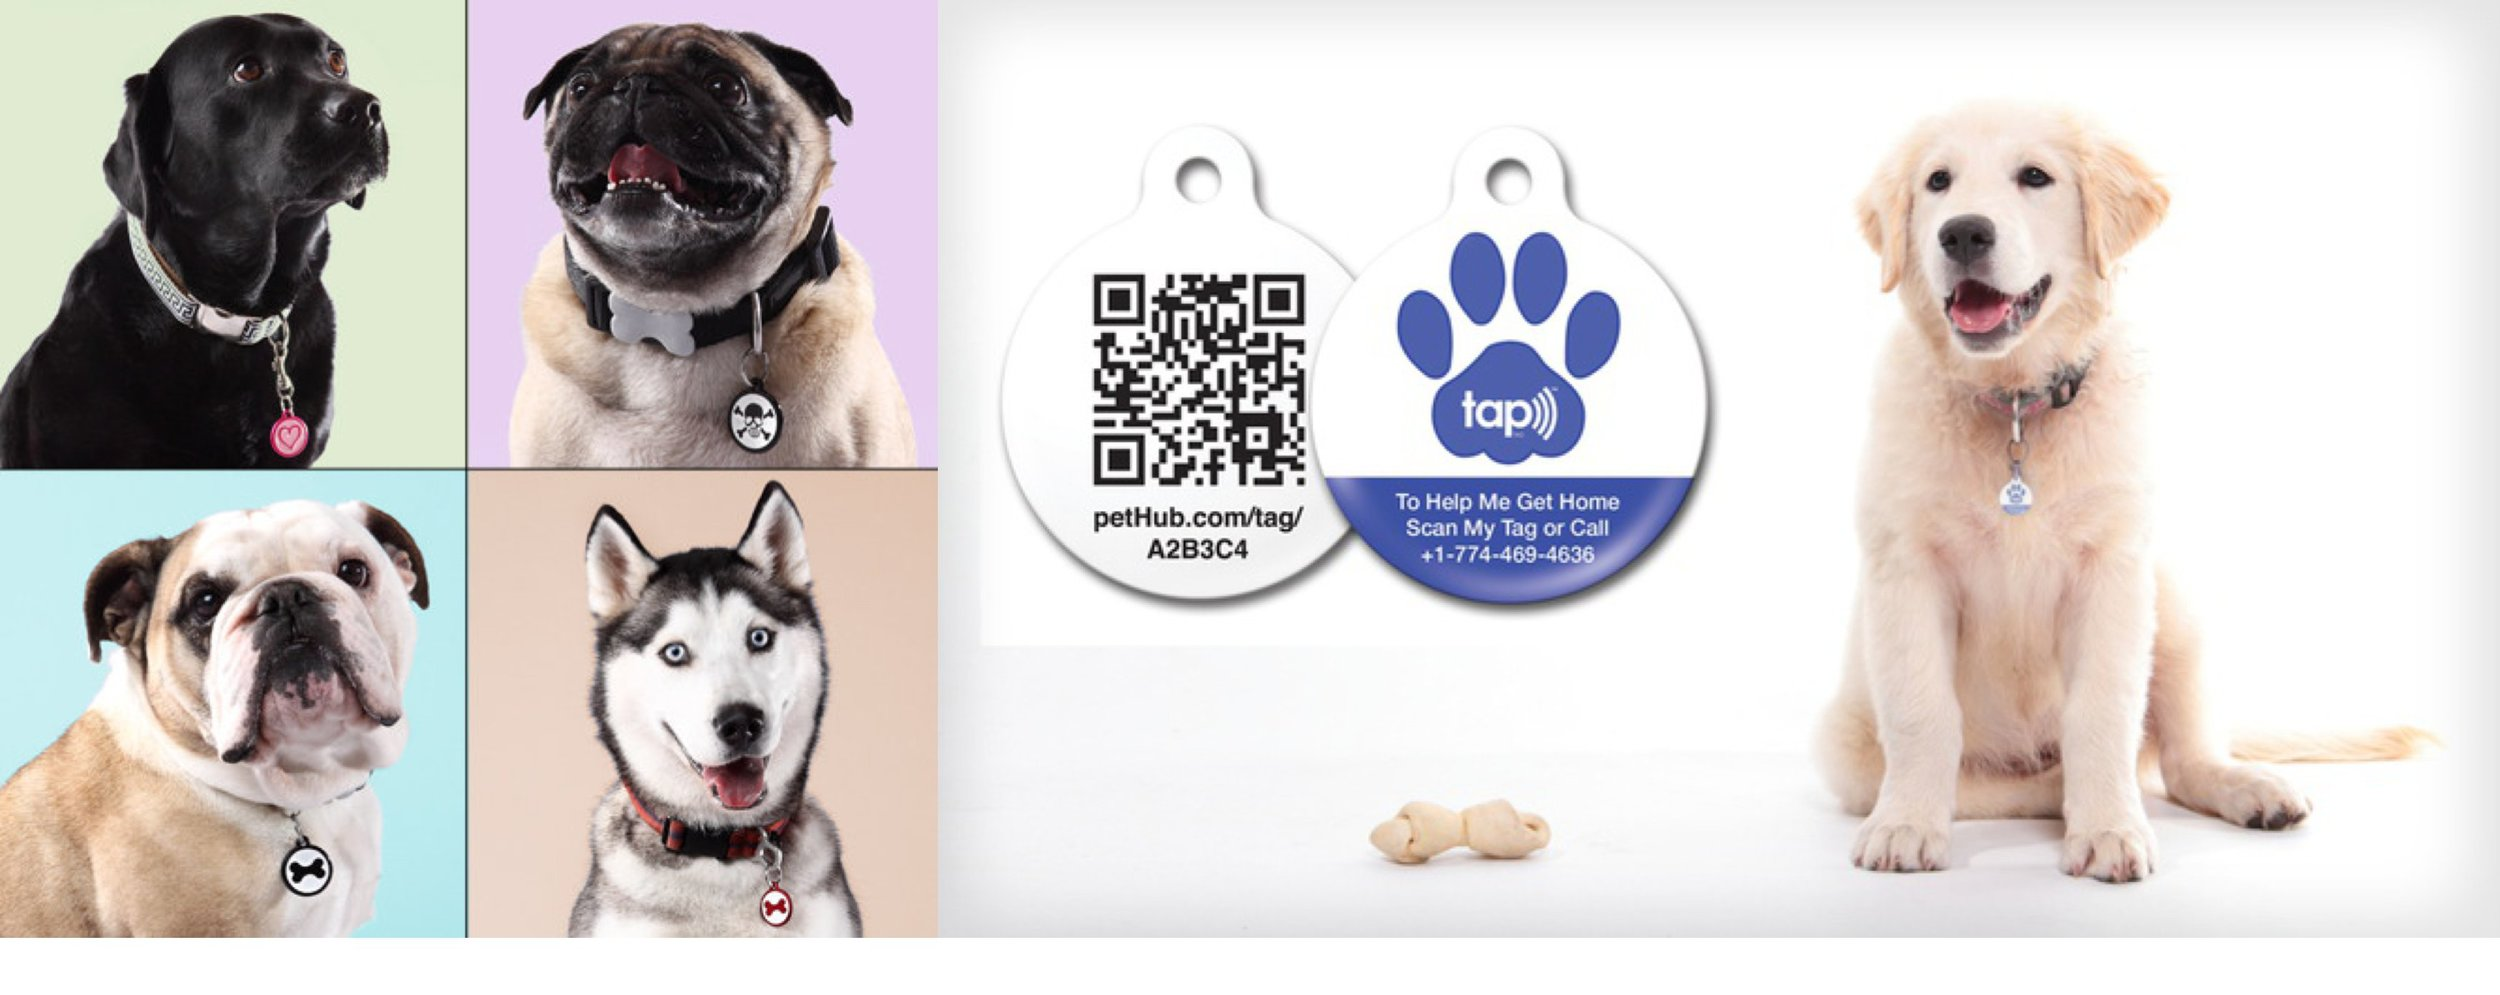 pethub-smart-pet-identifier-for-dogs